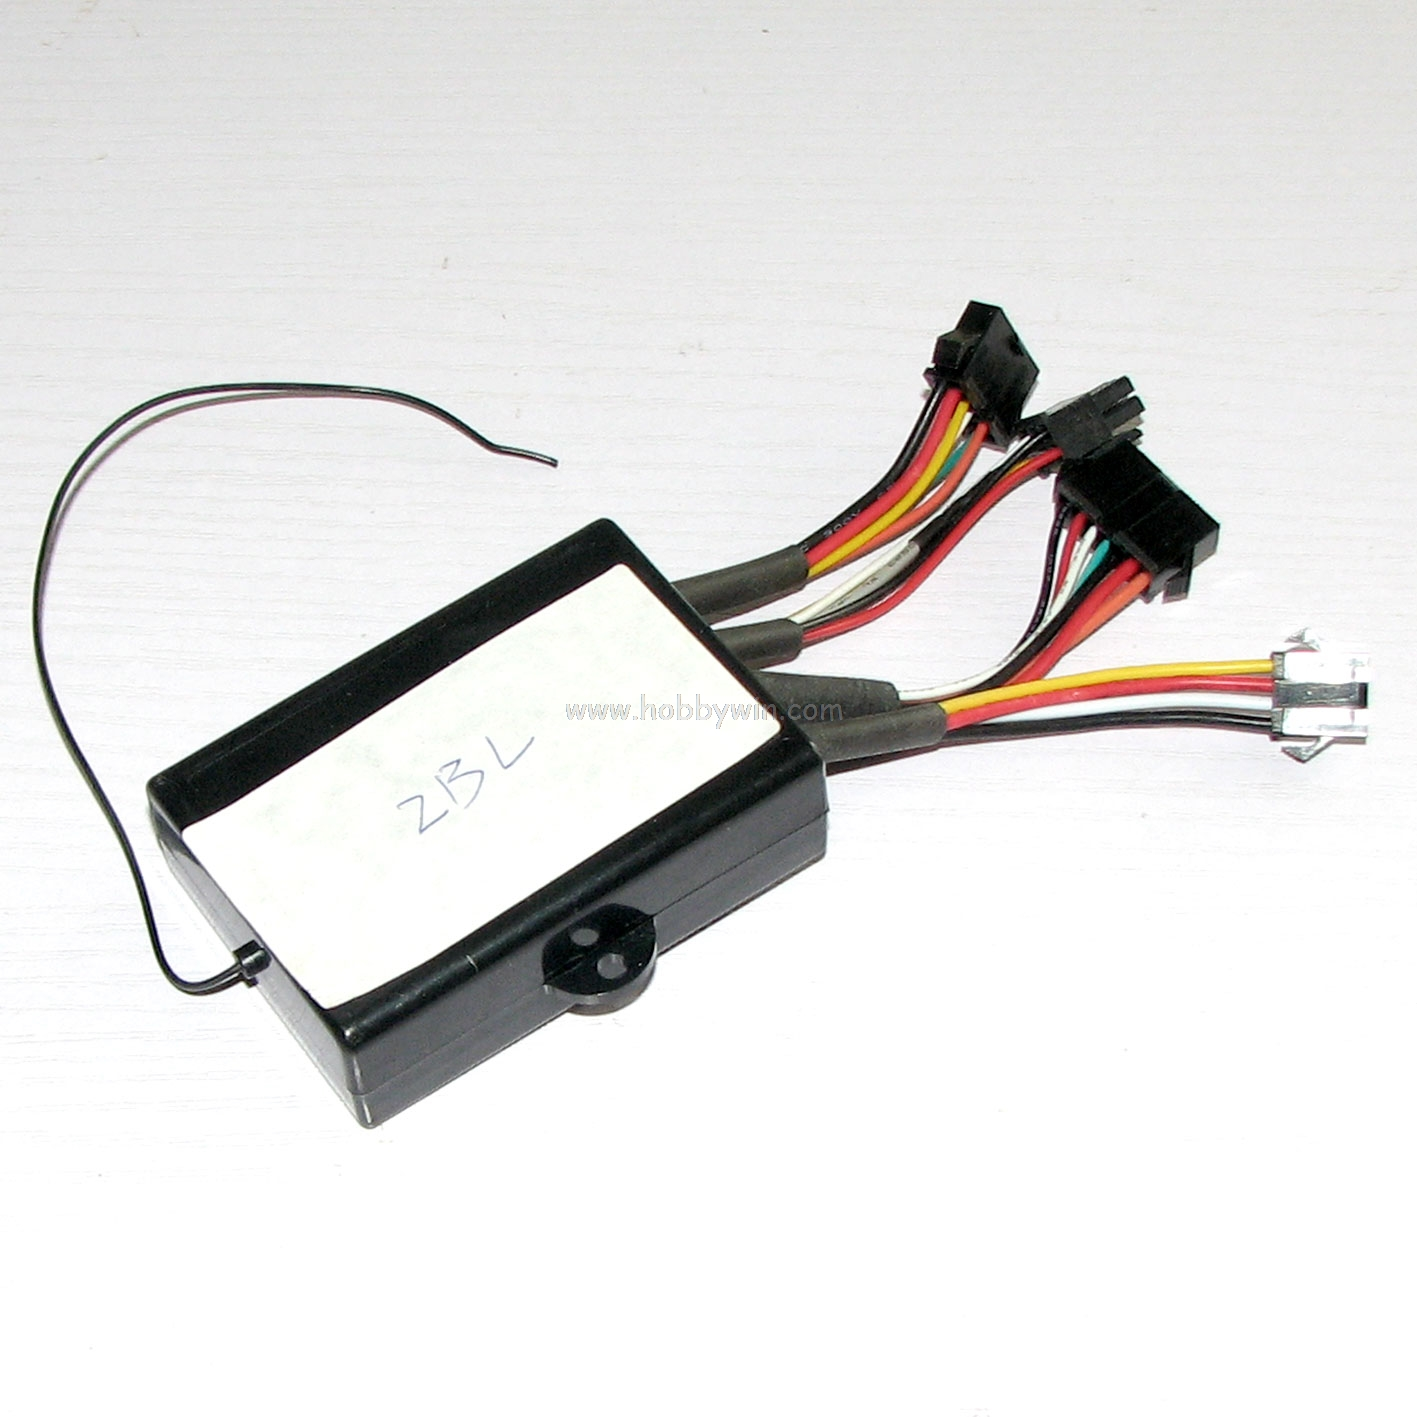 small resolution of jabo part receiver for jabo 2bl lithium battery bait boat 2 4ghz rc feeding fishing ship spare parts